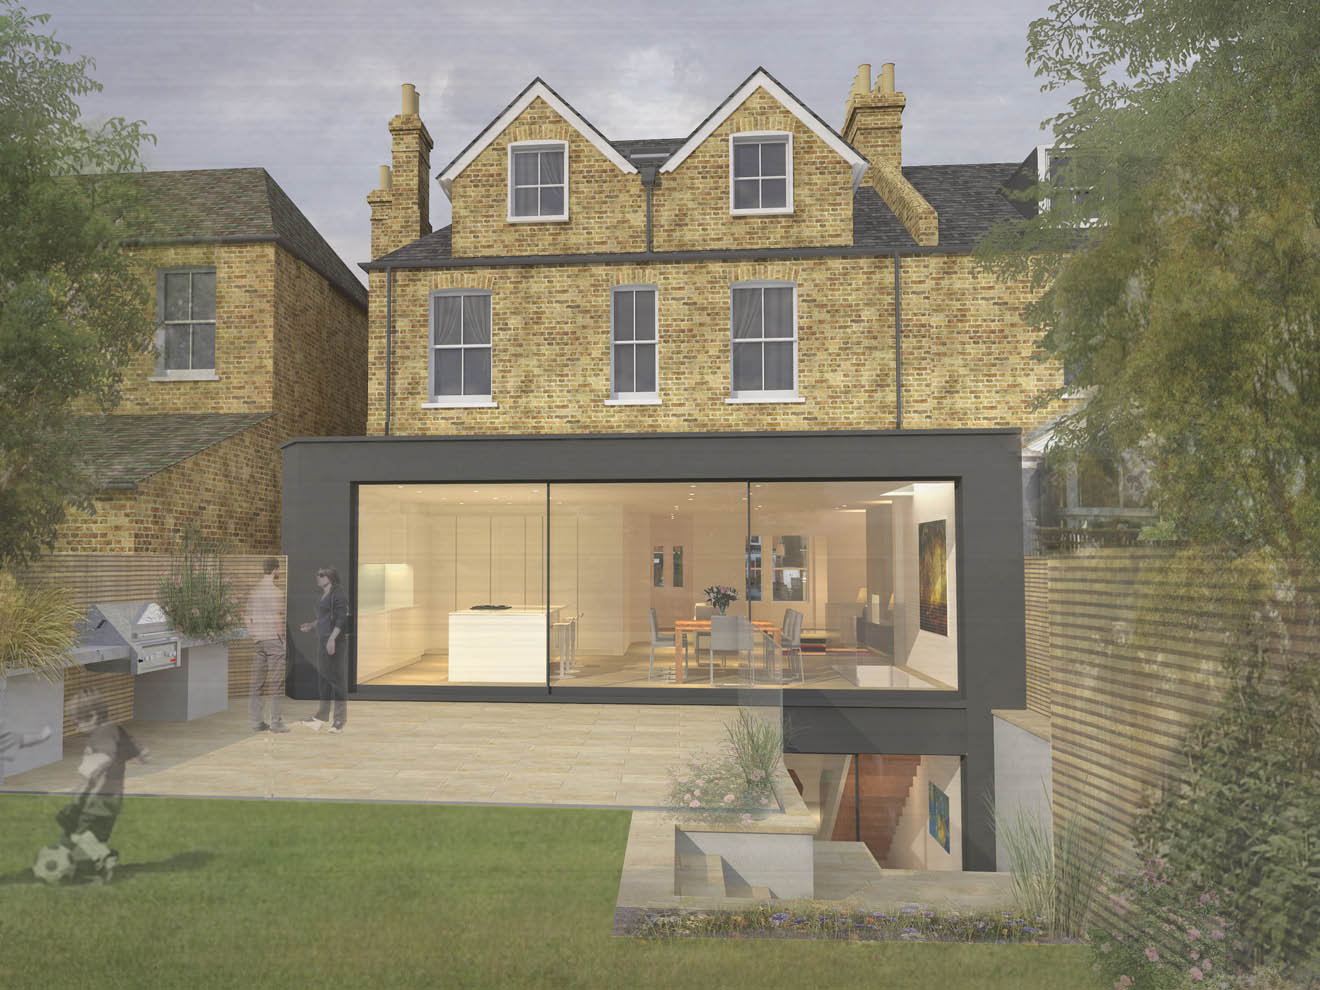 Planning Approval Has Been Granted For A Roof Extension